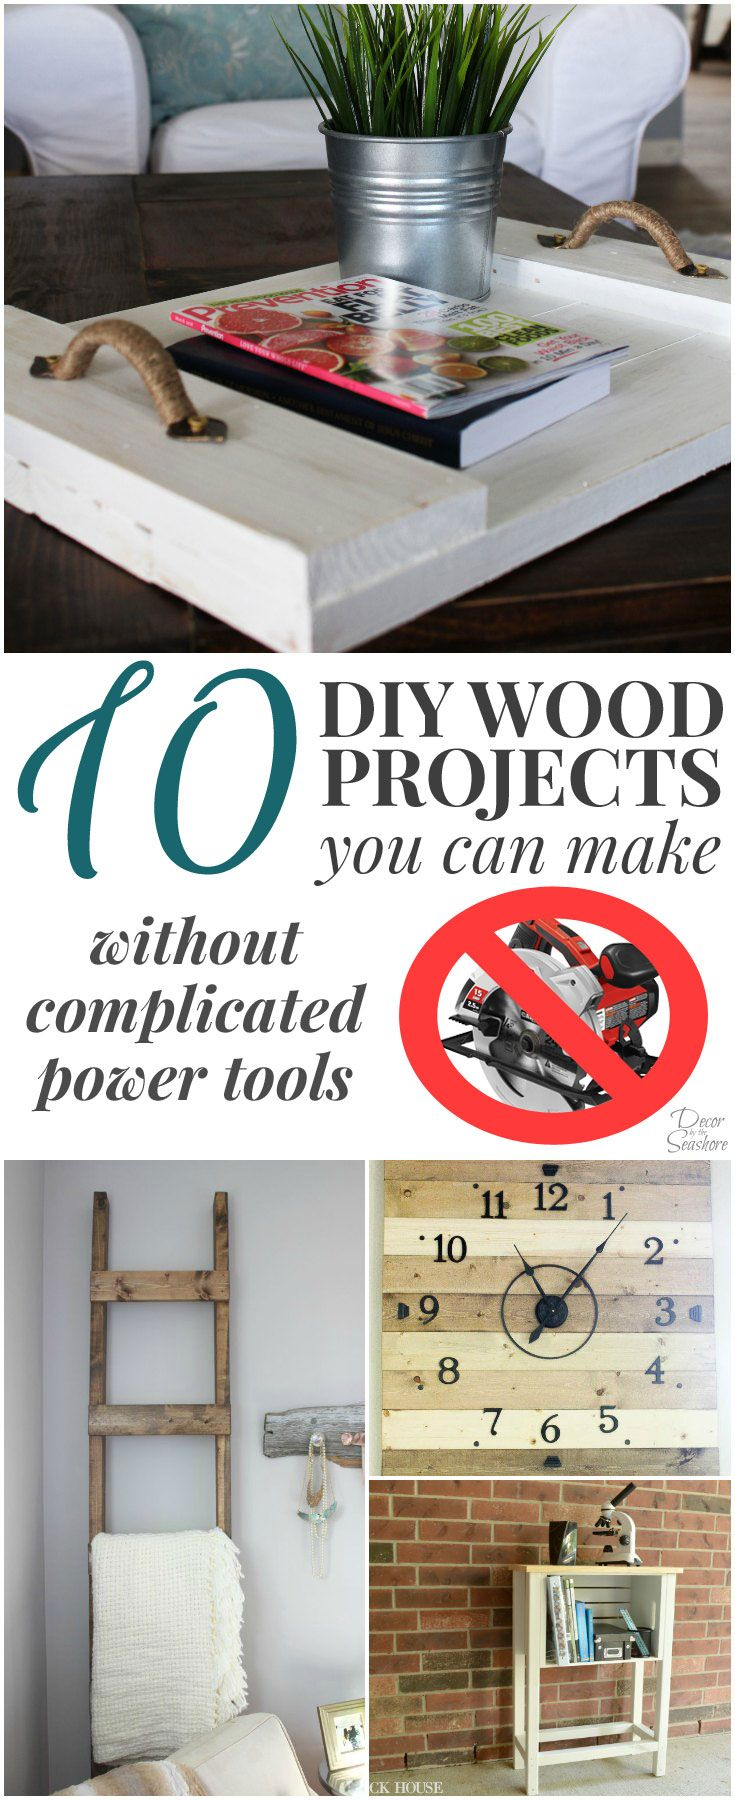 images about palette on pinterest coins power tools and diy